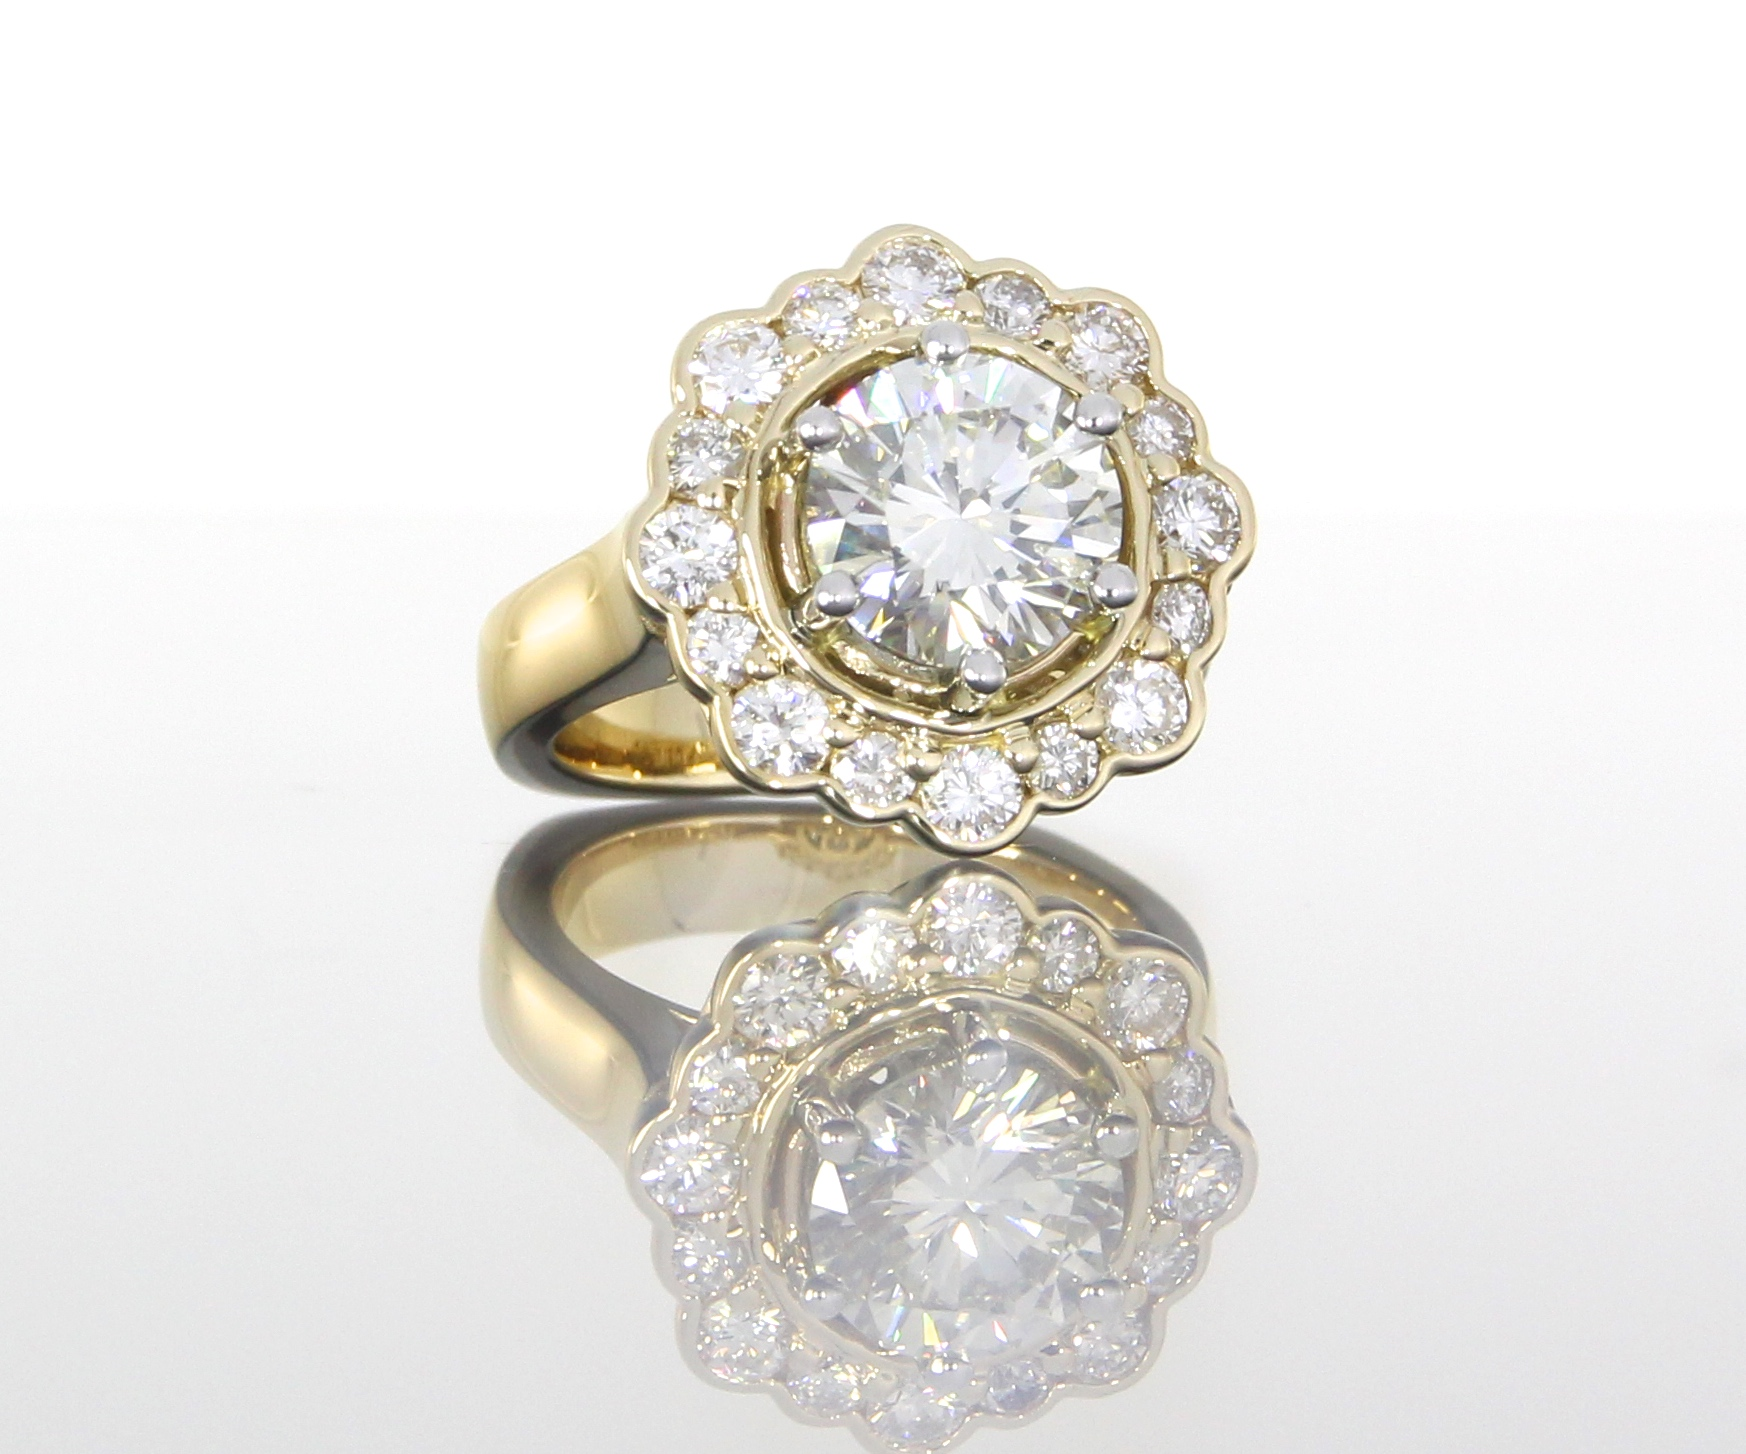 unique-halo-diamond-engagement-ring-craft-revival-jewelers-grand-rapids.jpg